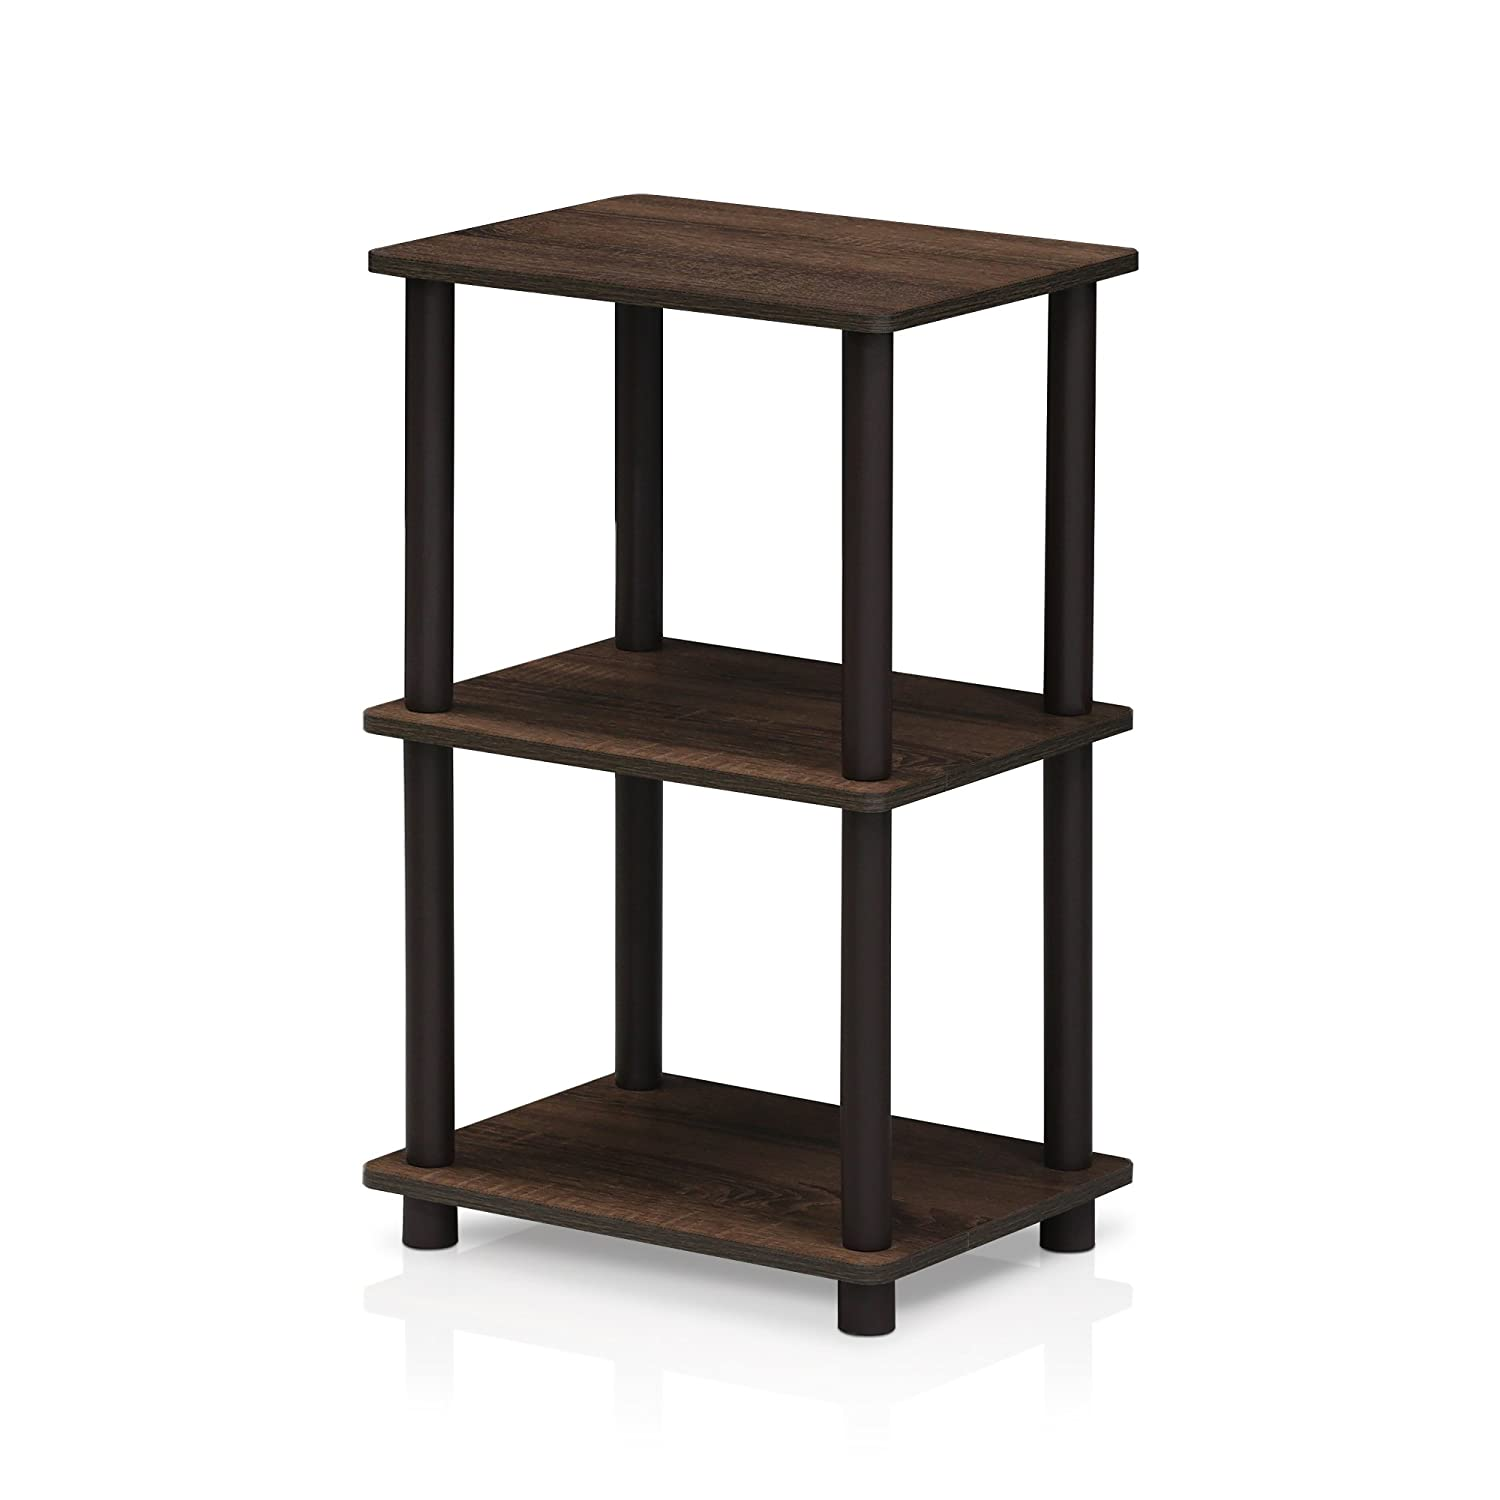 Furinno 16101WN/BR Turn-N-Tube 2 Space Shelf, Walnut/Brown